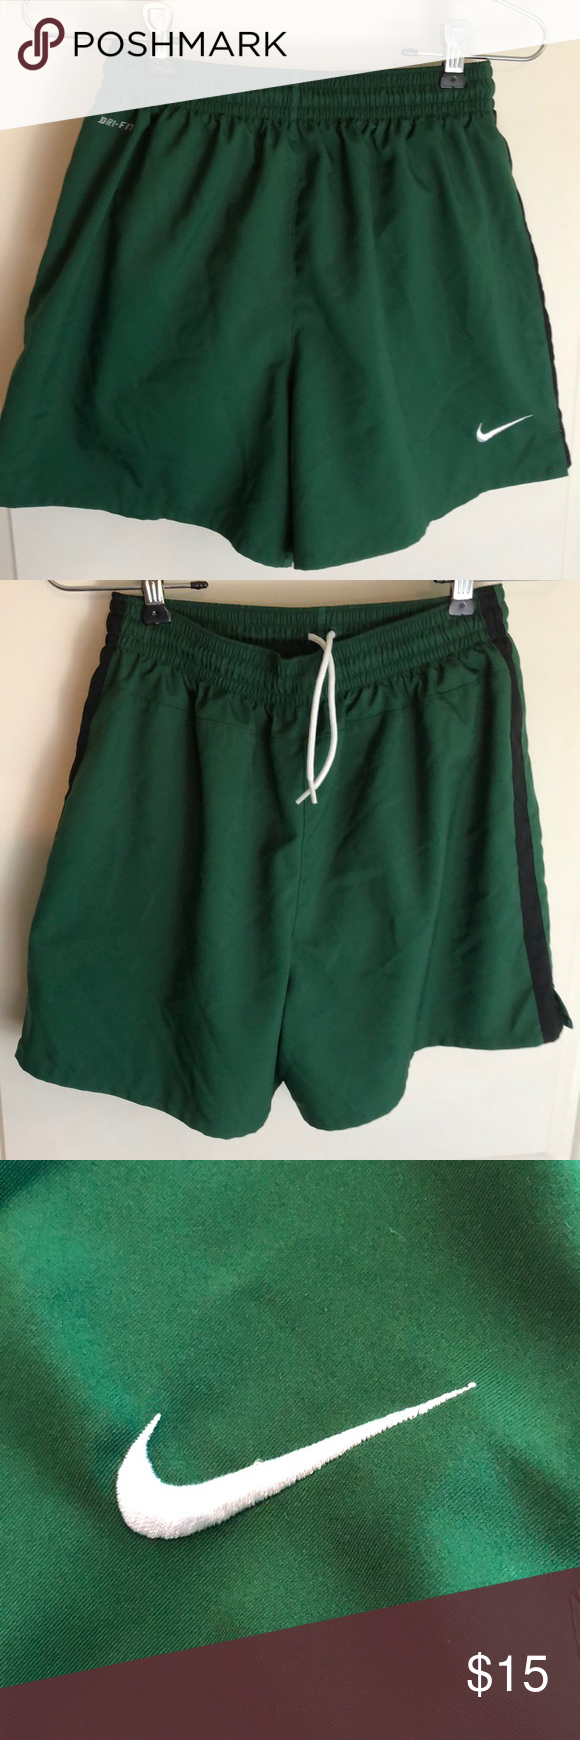 b886458743404 Nike Youth Dri Fit swim trunks green large E6-12 Size large Elastic waist  Tie up strings Lined Excellent condition Nike Swim Swim Trunks